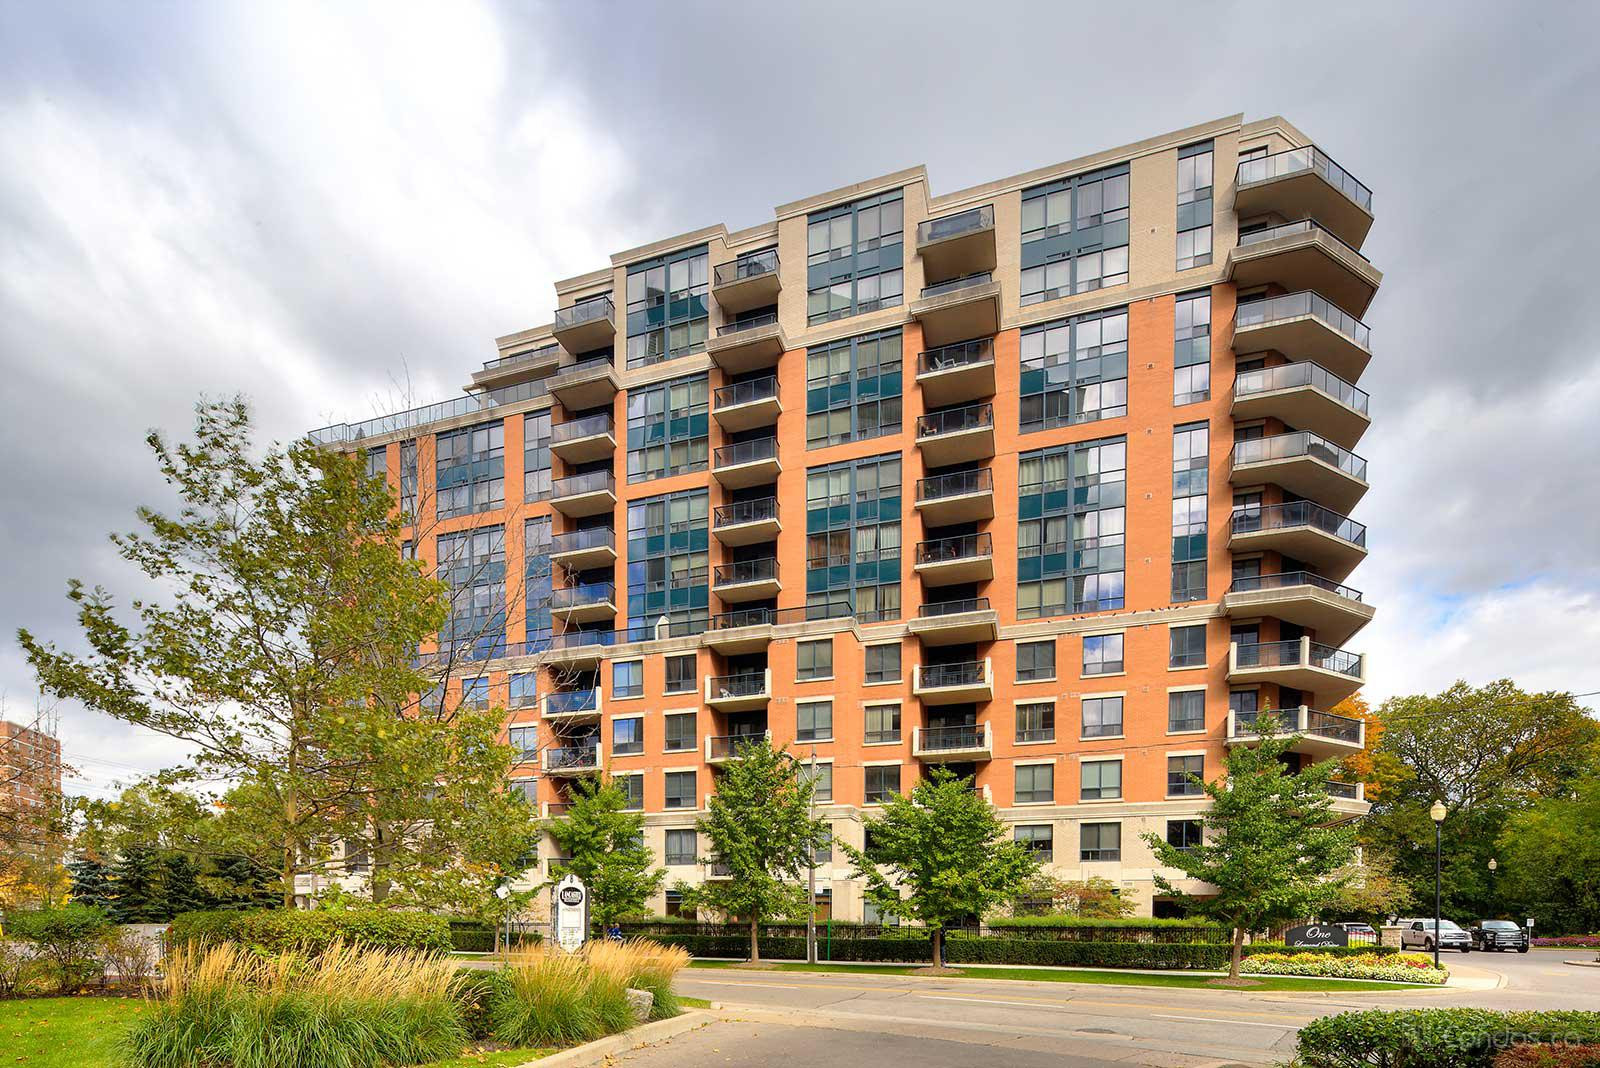 Town and Country Ⅰ at 1 Lomond Dr, Toronto 1